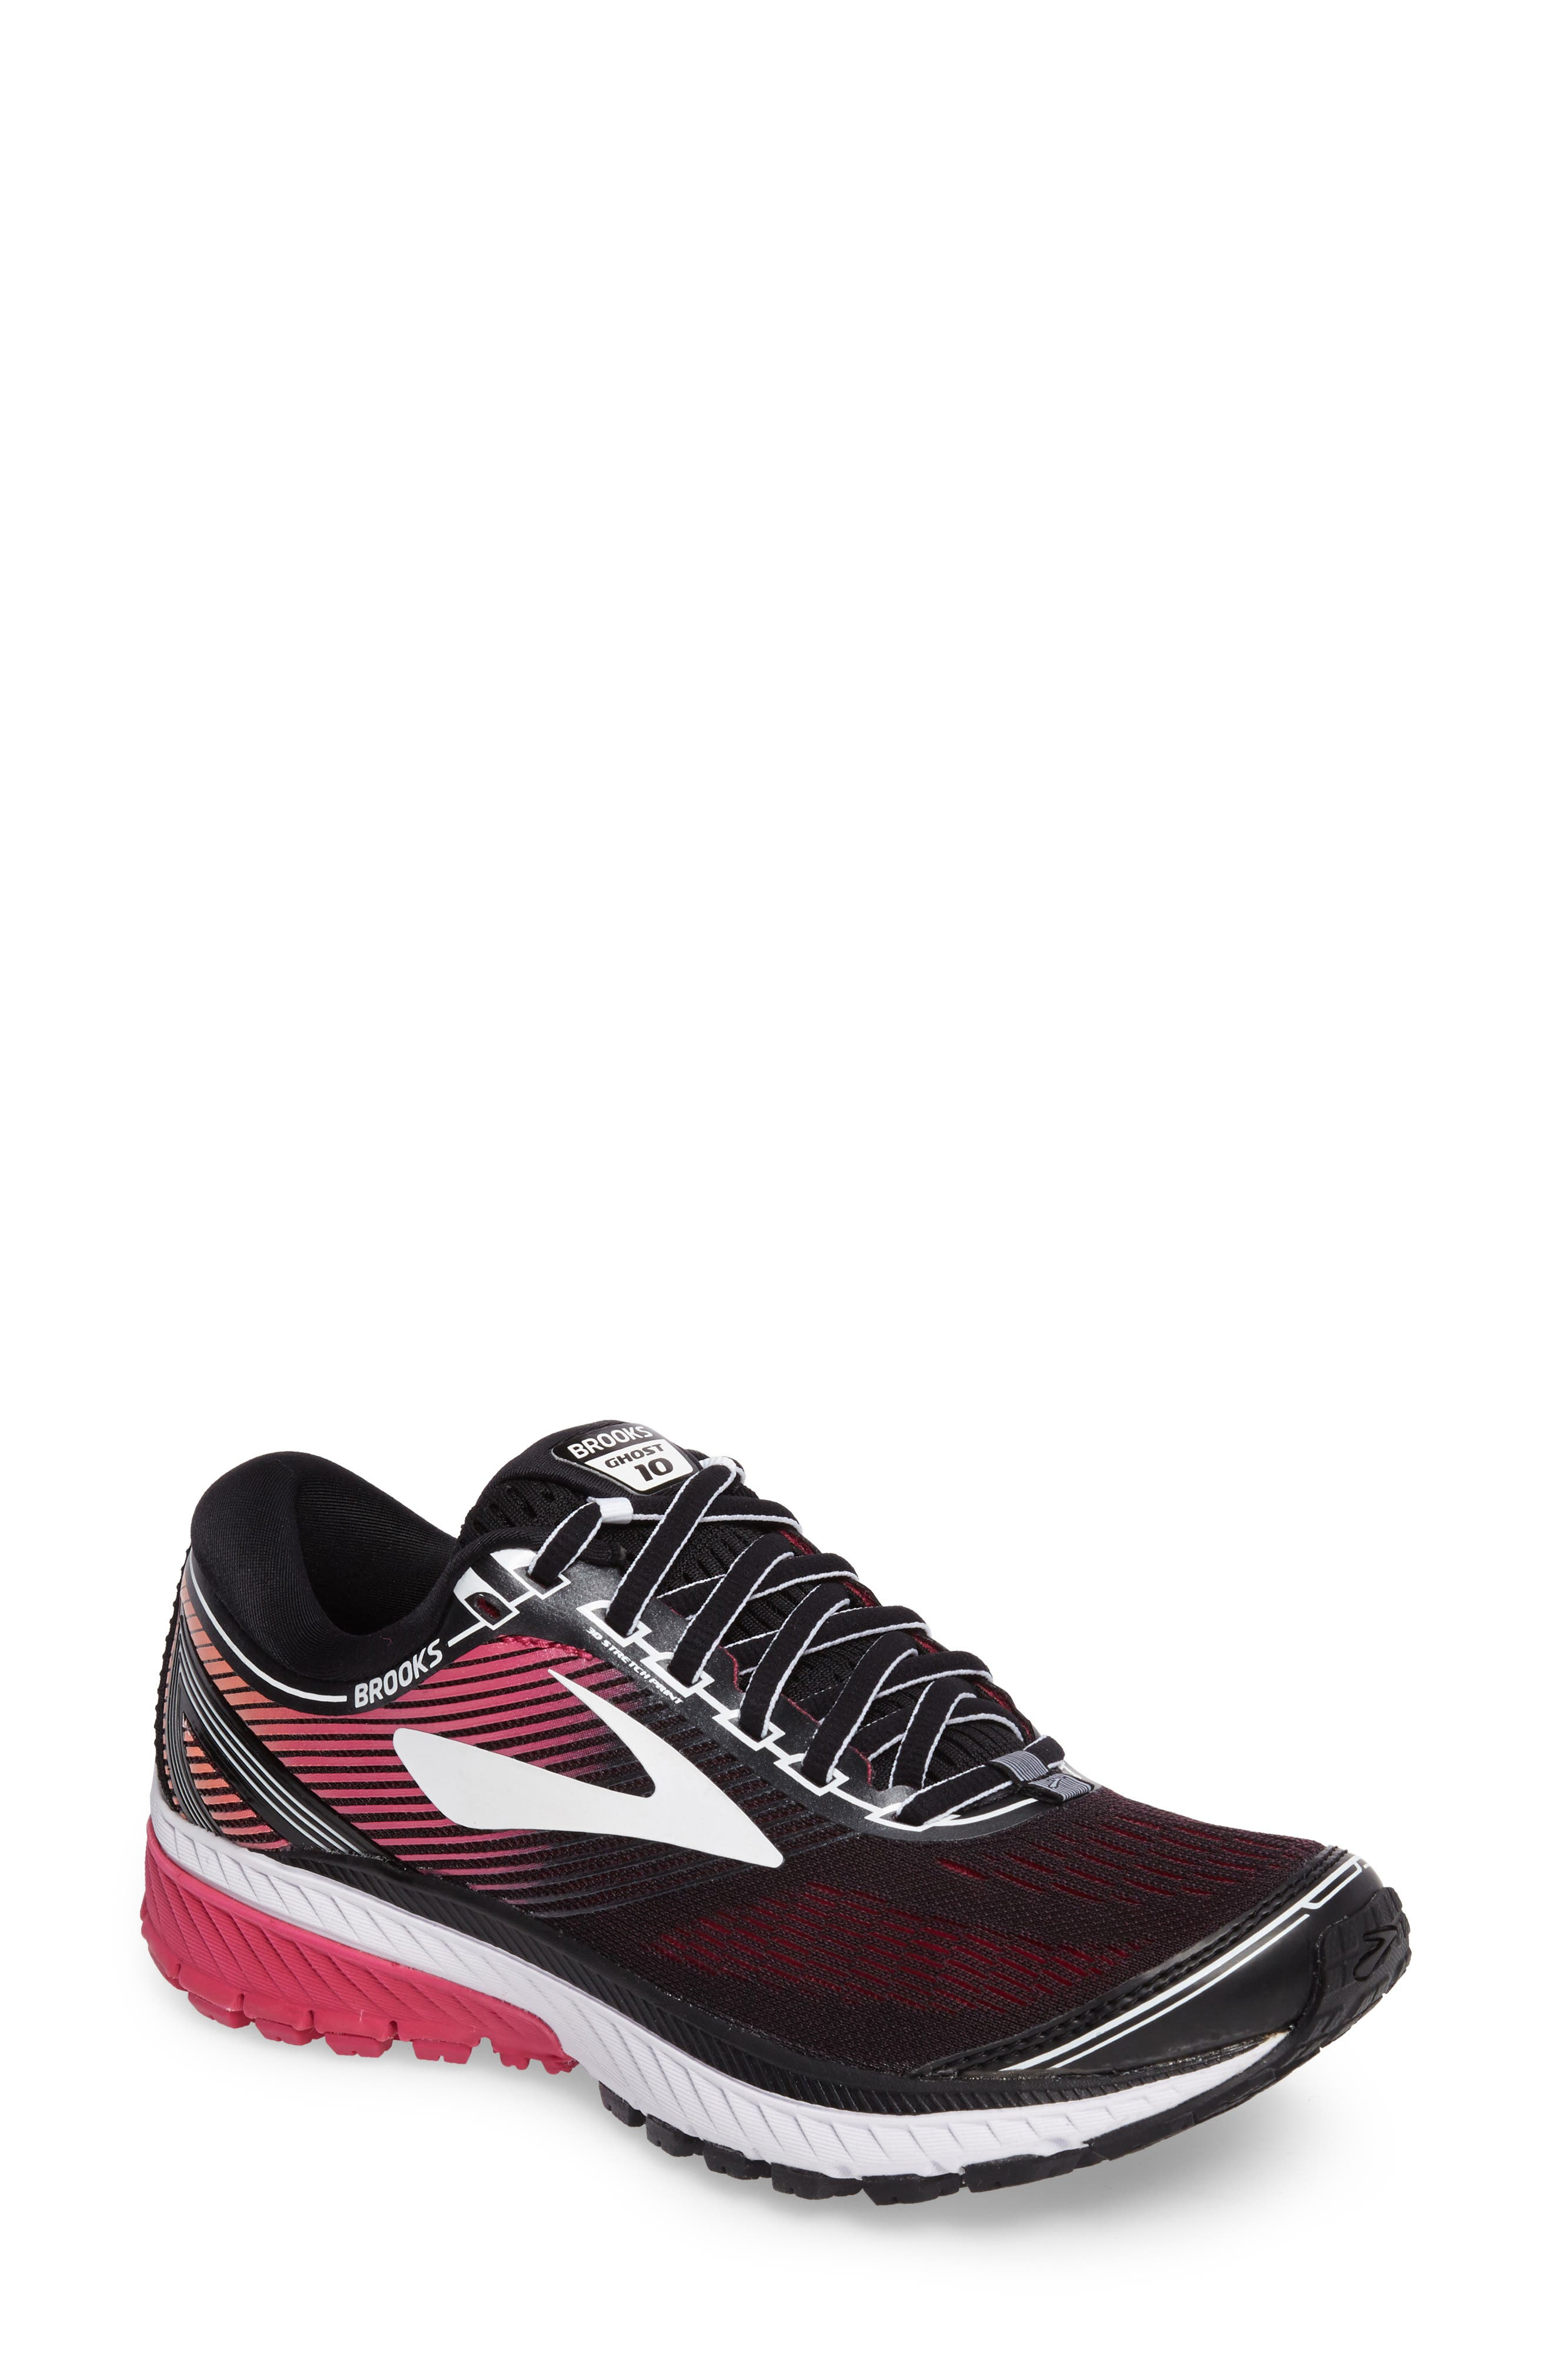 Main Image - Brooks Ghost 10 Running Shoe (Women)